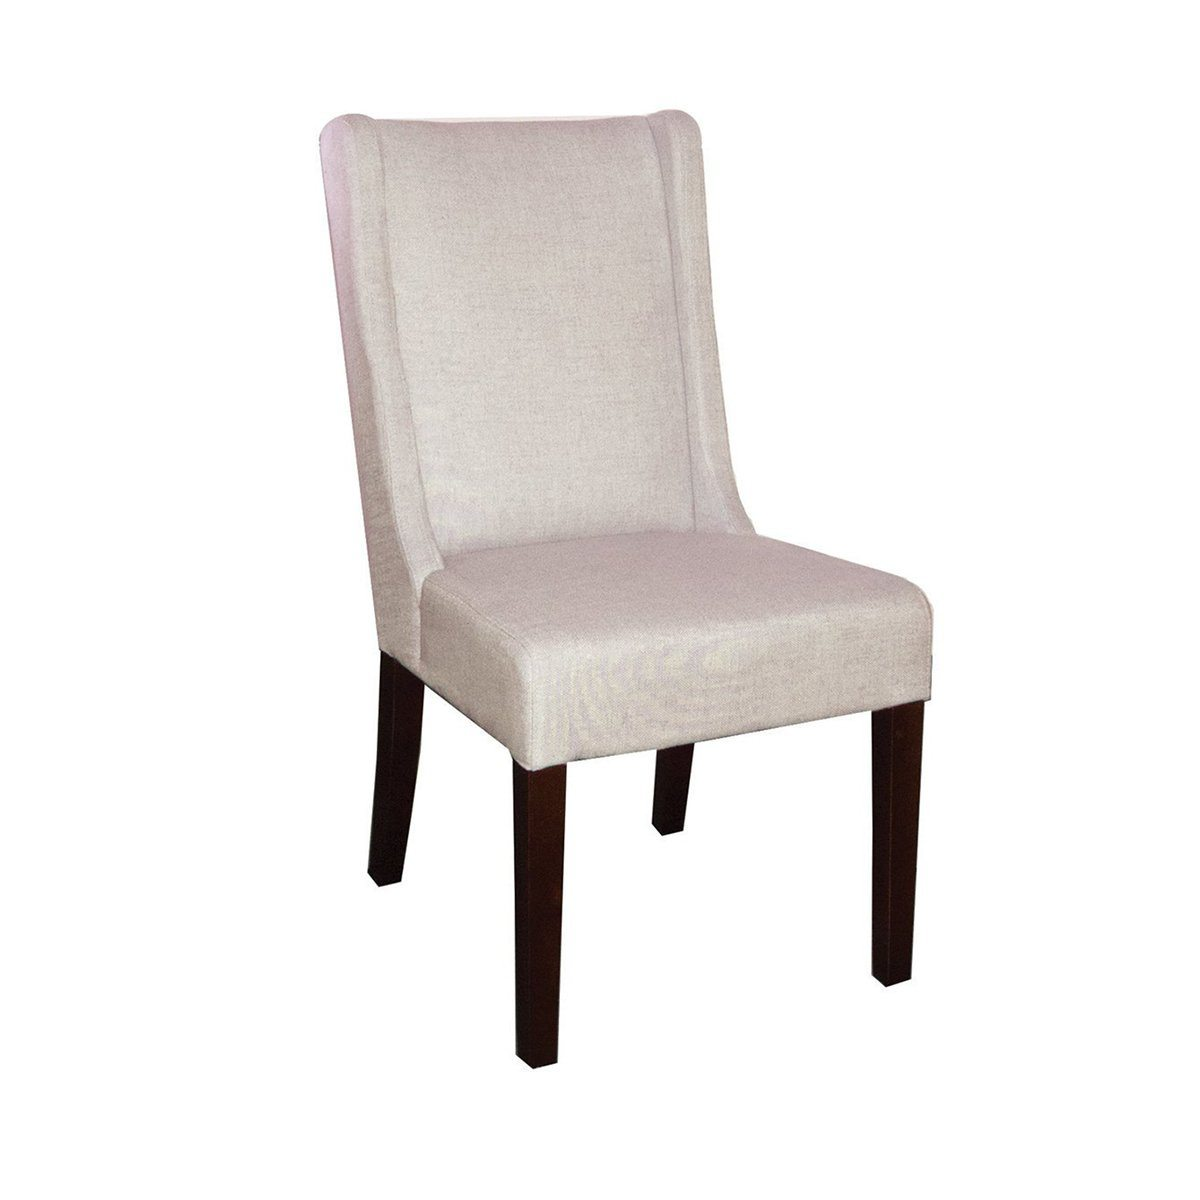 Non-Tufted High Back Chair - White Russian Fabric Chairs LH